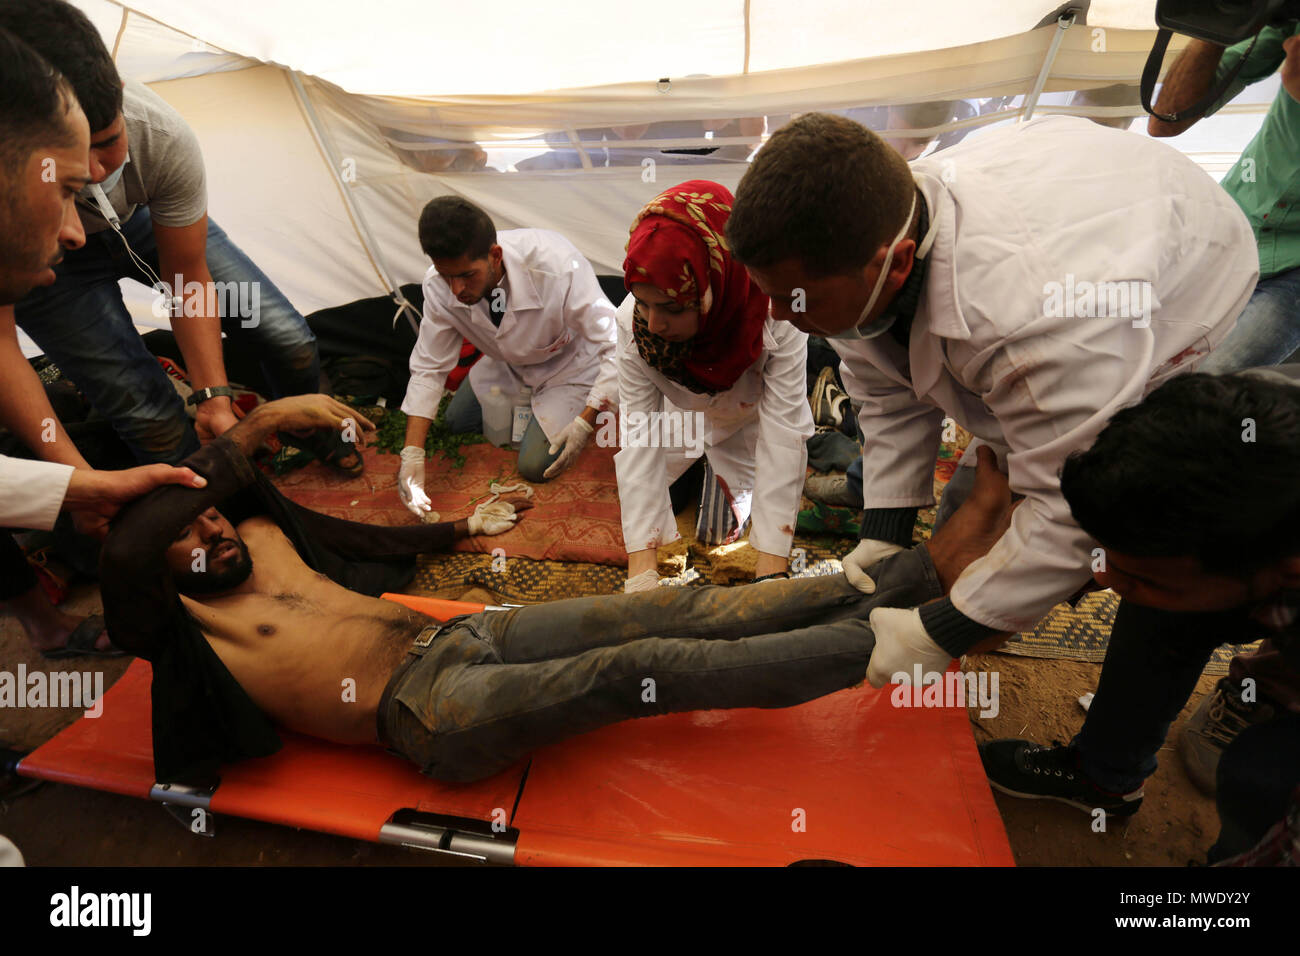 Khan Younis, Gaza Strip, Palestinian Territory. 1st Apr, 2018. (FILES) This file photo taken on April 1, 2018. shows A Palestinian medical Razan al-Najjar helps an injured Palestinian man at an emergency medical tent, who was killed during a protest at the Israel-Gaza border, in Khan Younis in the southern Gaza Strip, on June 1, 2018 Credit: Ashraf Amra/APA Images/ZUMA Wire/Alamy Live News - Stock Image